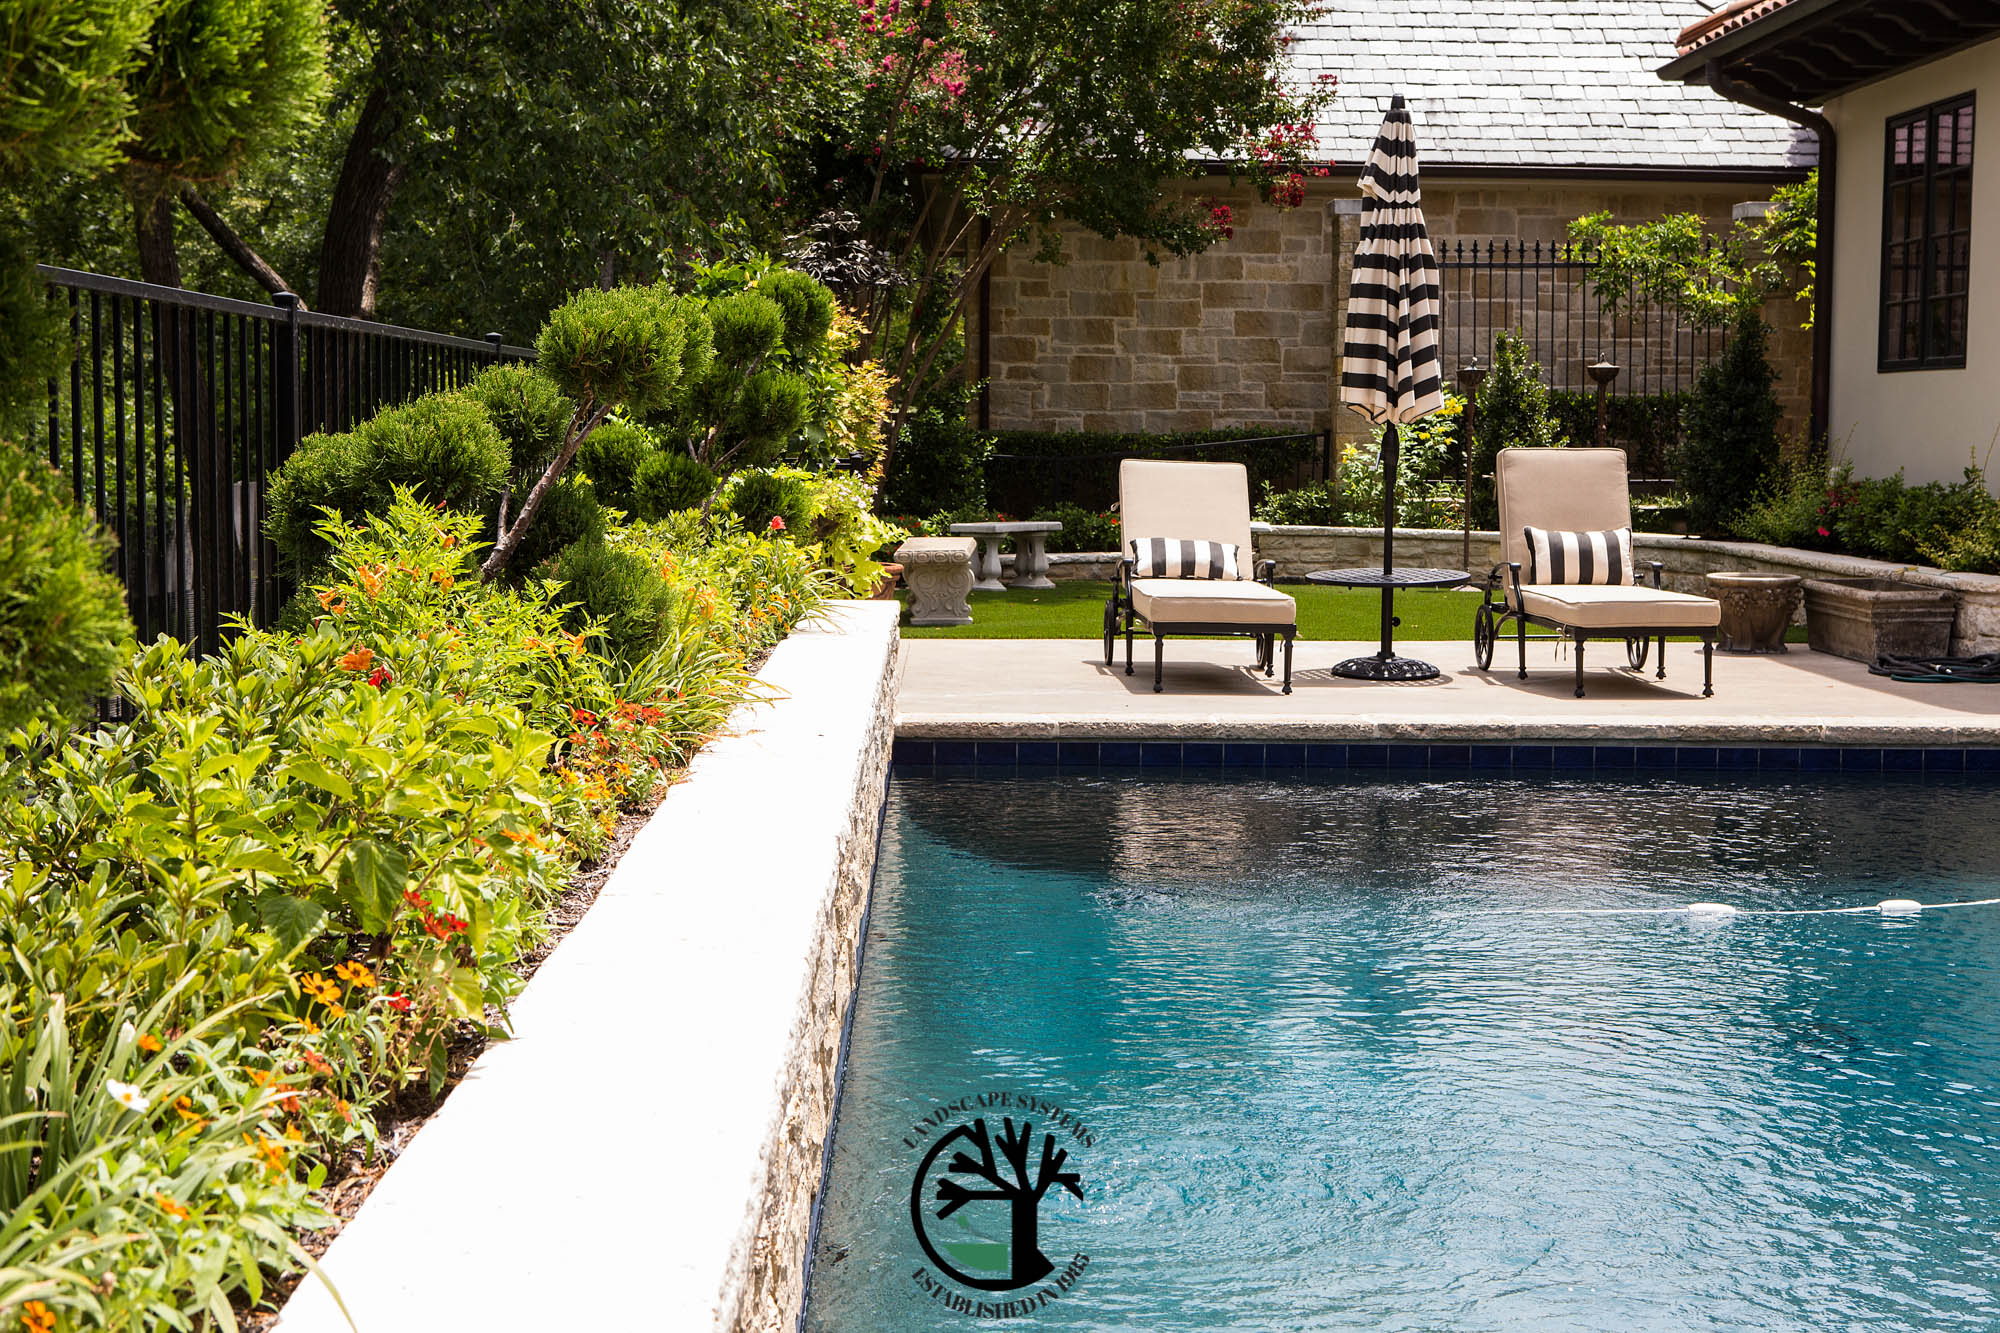 Landscape Design Southlake Texas (28 of 30) - Landscape ... on Small Landscape Garden Design  id=87743